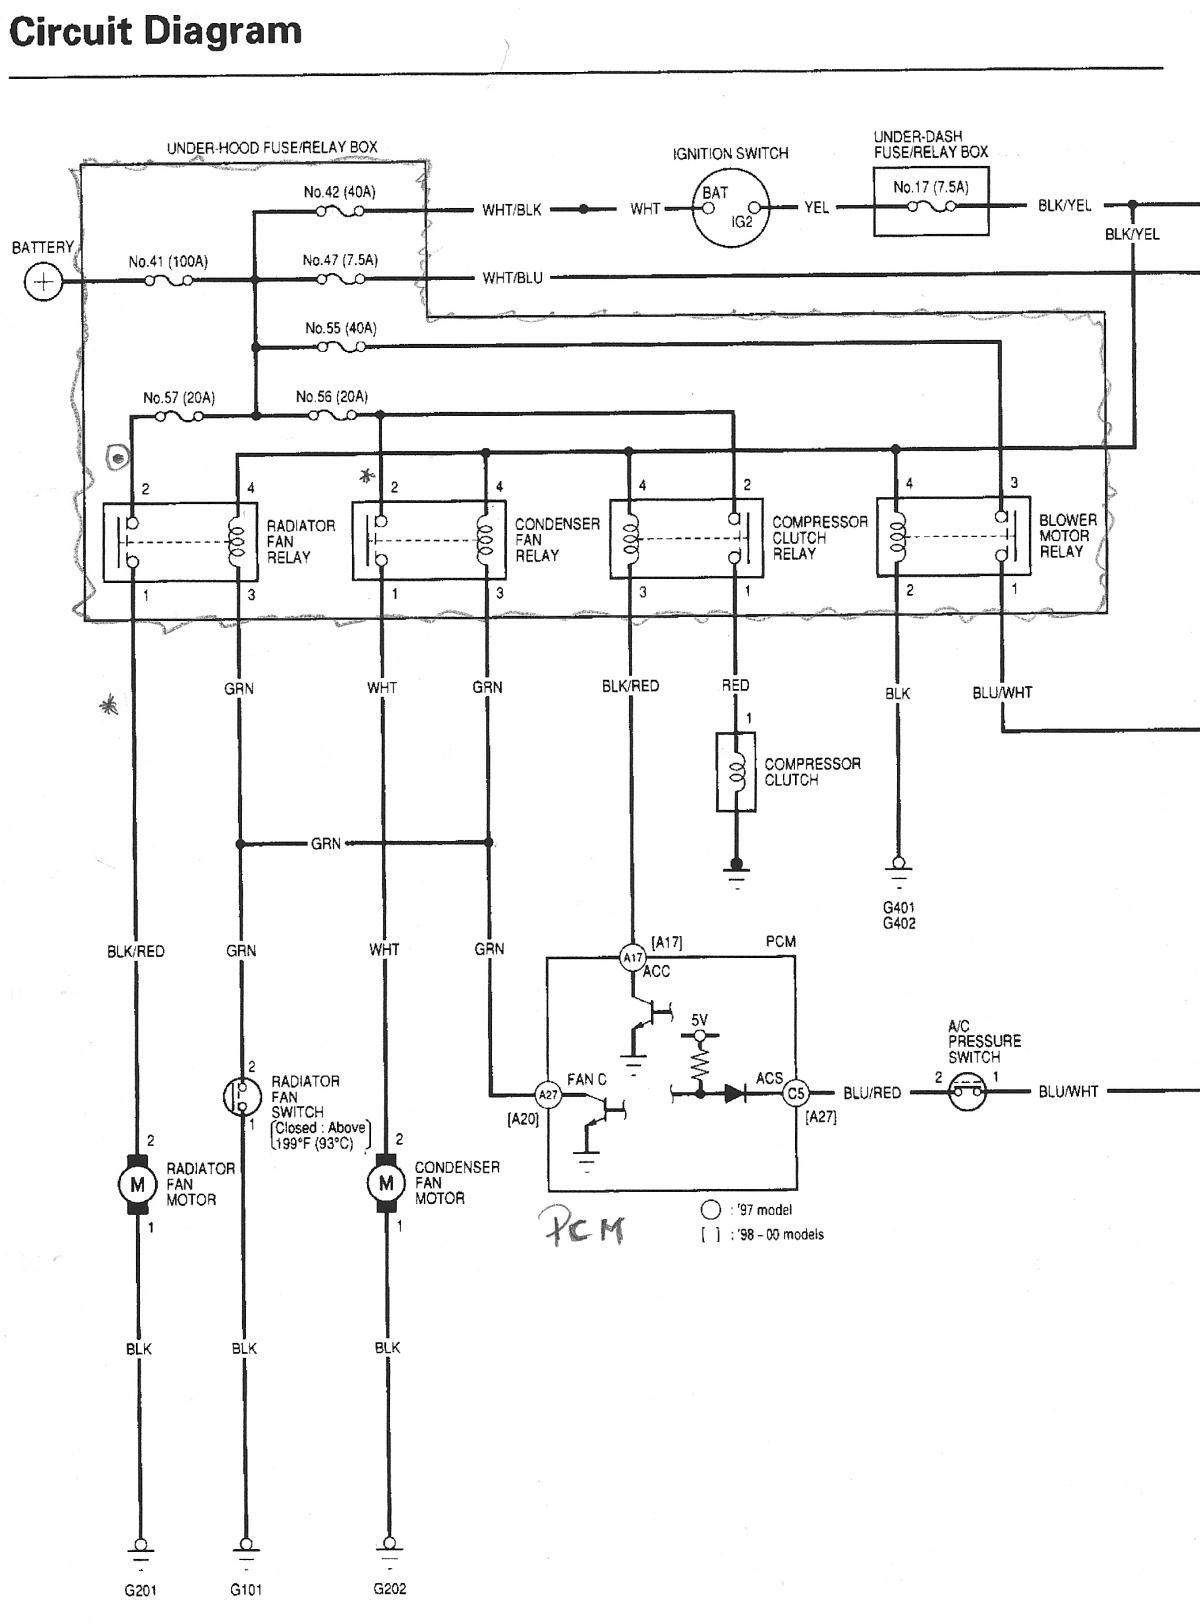 Unique Ac Schematics #diagram #wiringdiagram #diagramming #Diagramm  #visuals #visualisation #graphical | Diagram, Electric fan, Circuit diagramPinterest